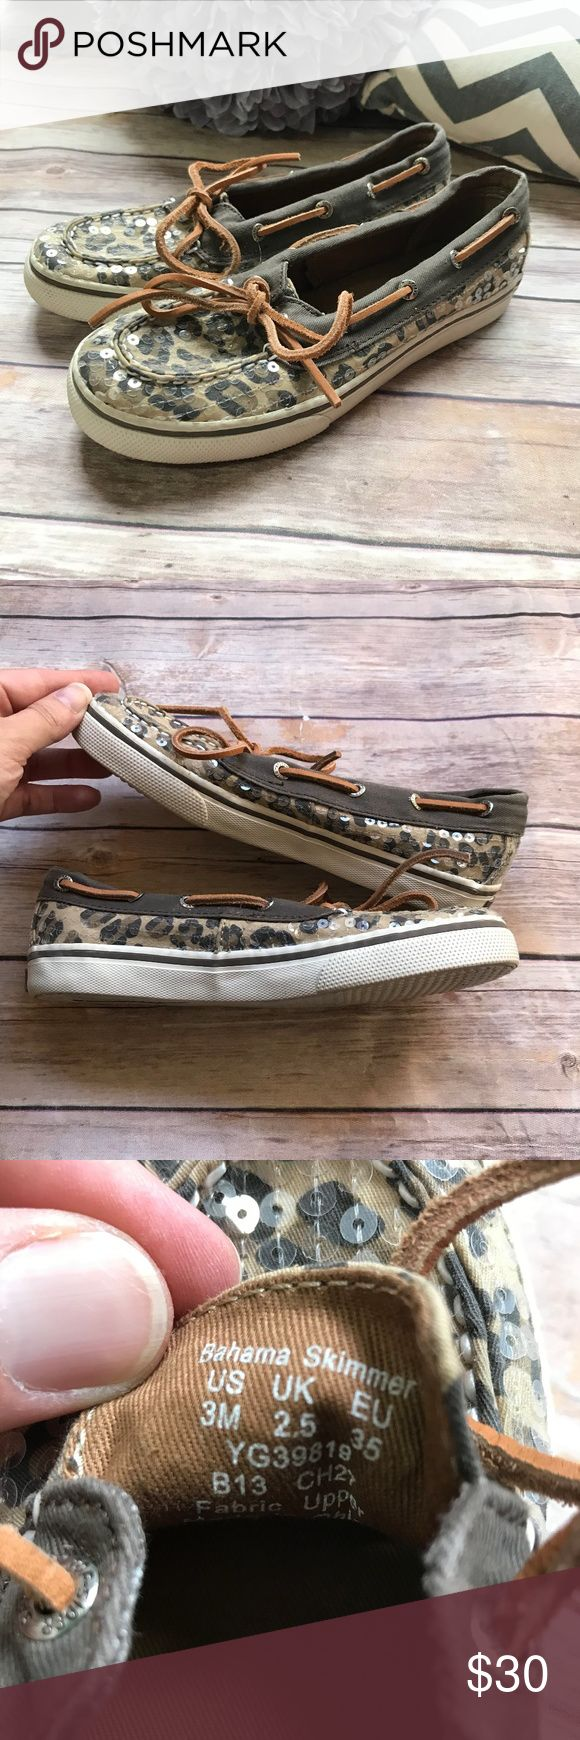 """Sperry Bahama Skimmer Leopard Cheetah Shoes 3M Sperry Bahama Skimmer Leopard Cheetah Shoes 3M  Sequined material. Leather laces. Overall very good condition. Some bent sequins. See pics - light wear. Right at 9"""" heel to toe as measured on the outsole. Sperry Shoes"""